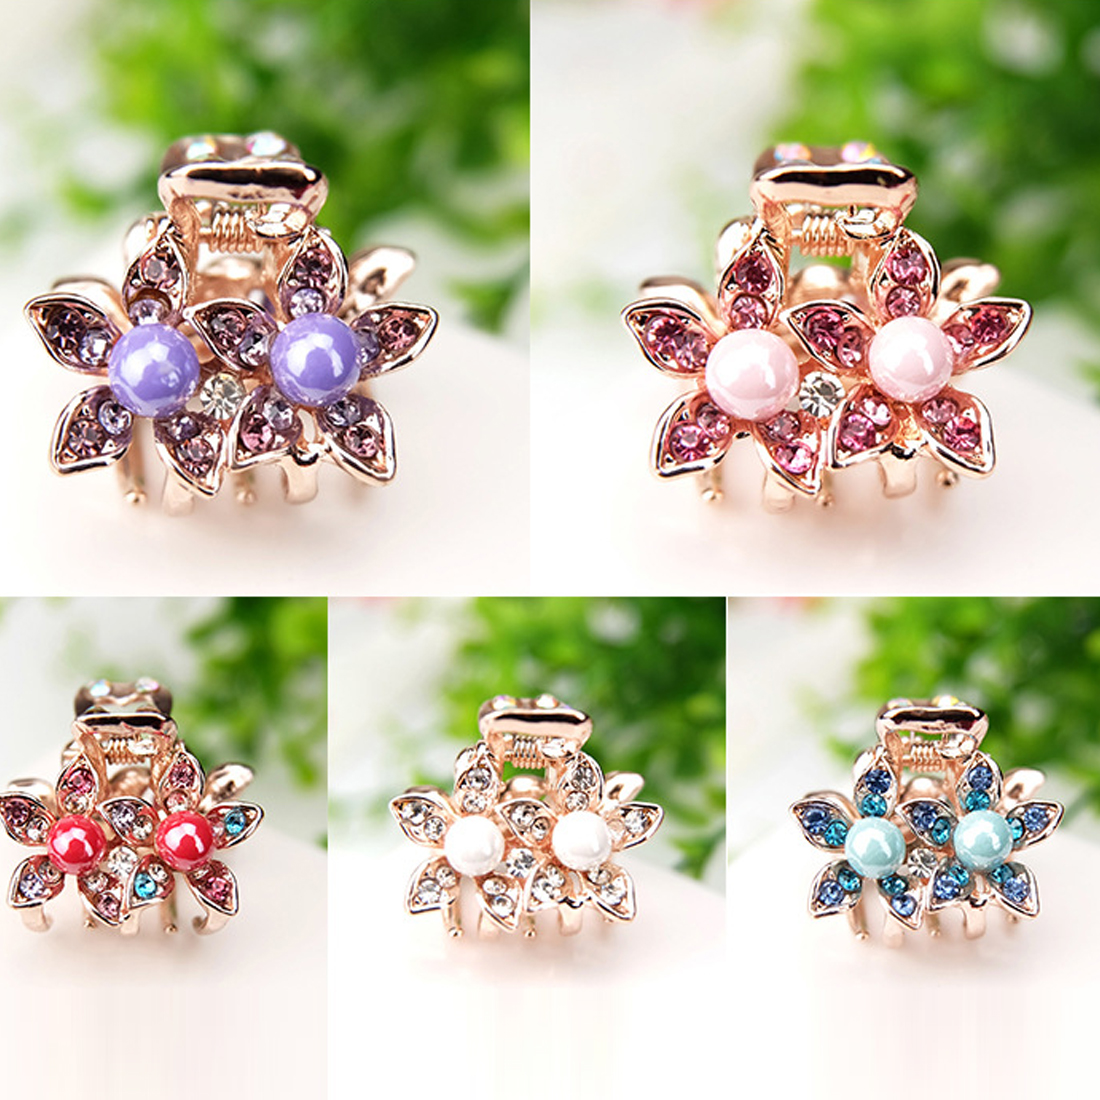 2017 Charming Flowers Crystal Rhinestone Alloy Crab Pearl Hairpin Claw Clip Bridal Jewelry Headwear Accessories